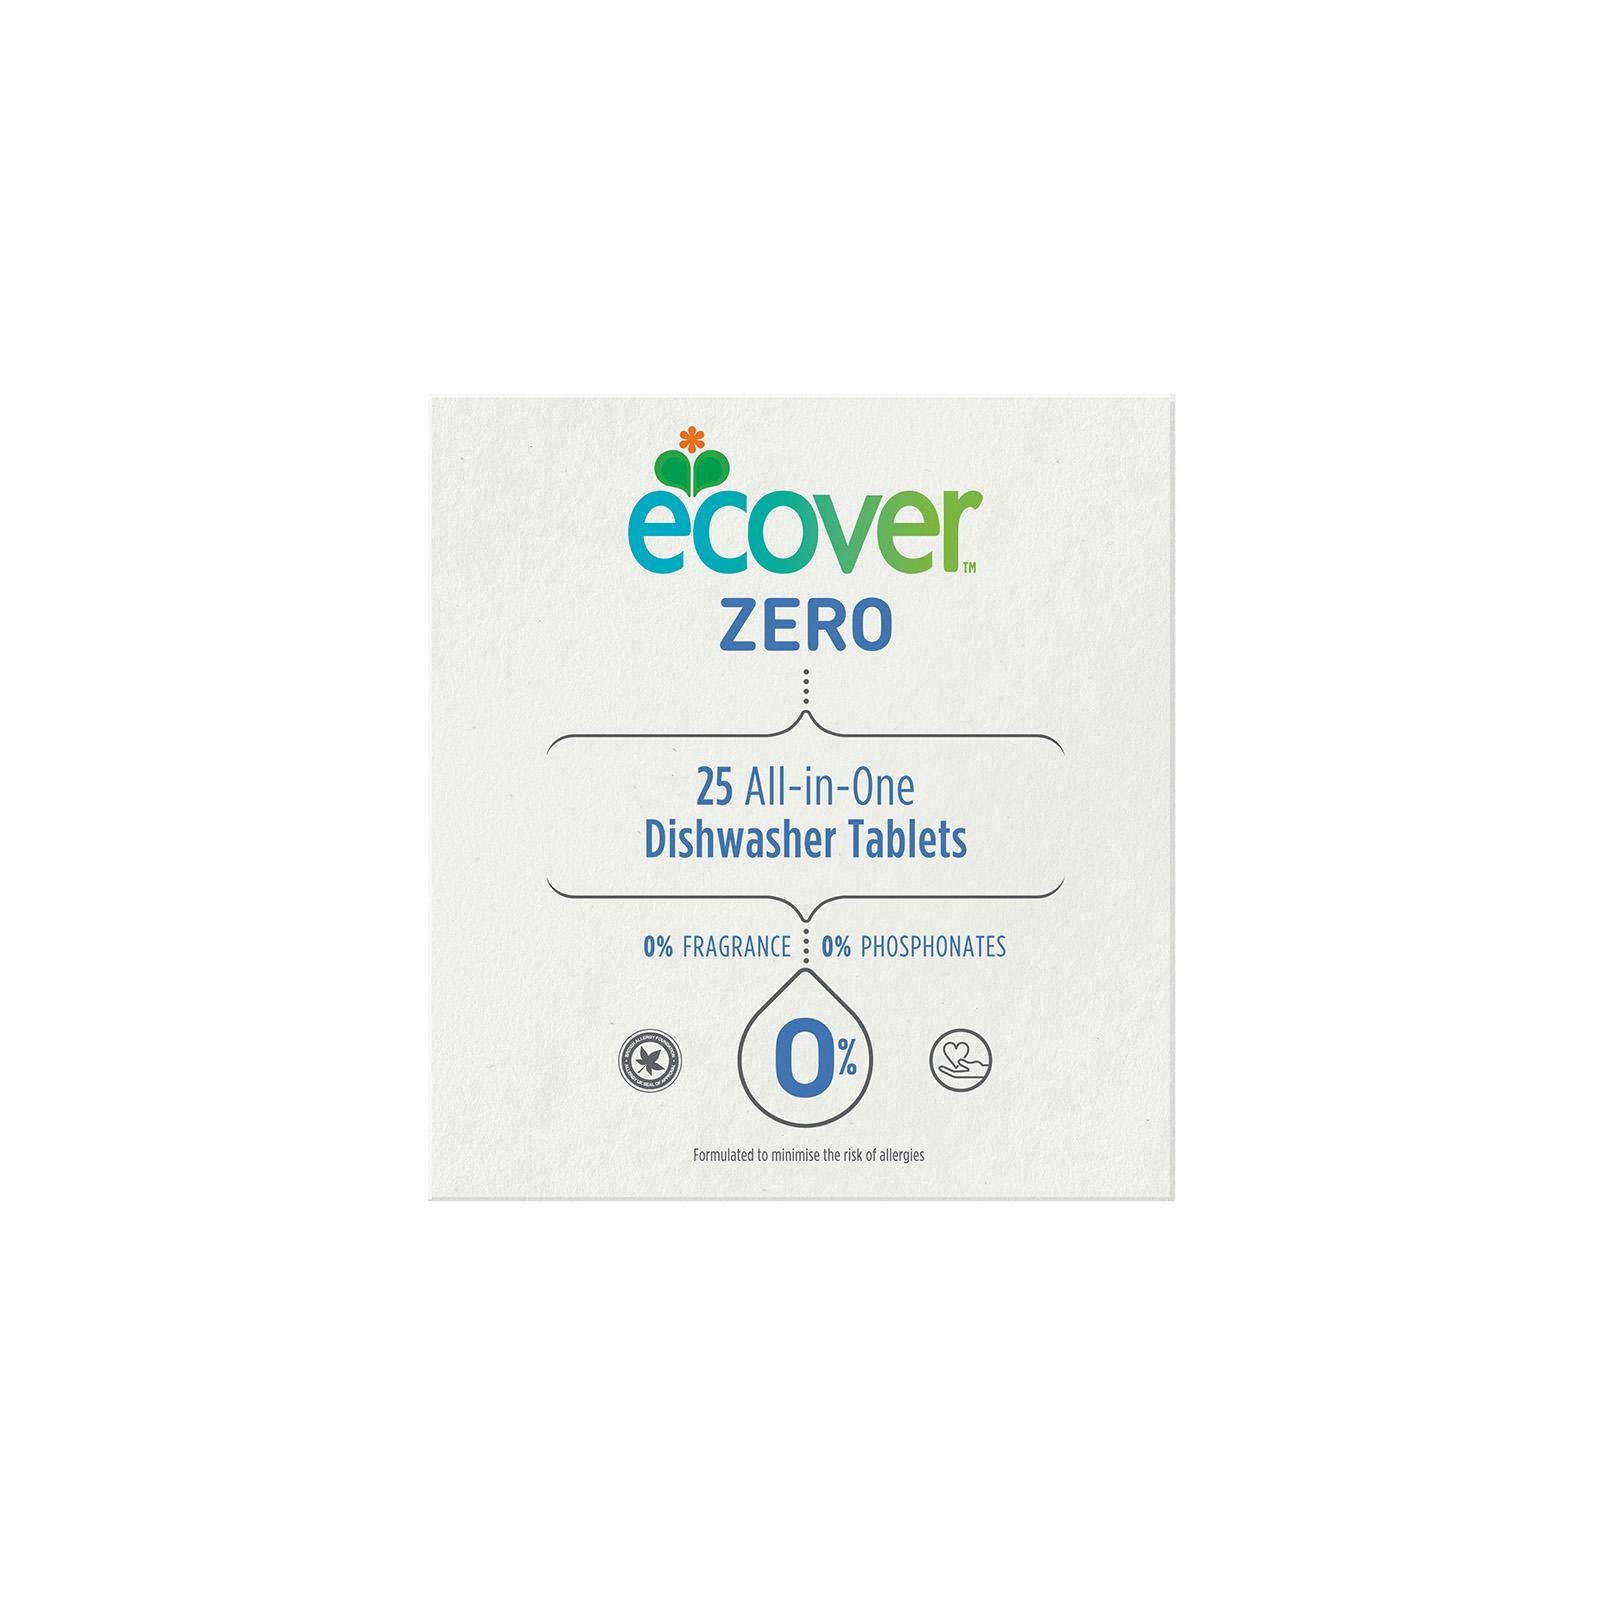 Ecover ZERO Dishwasher Tablets